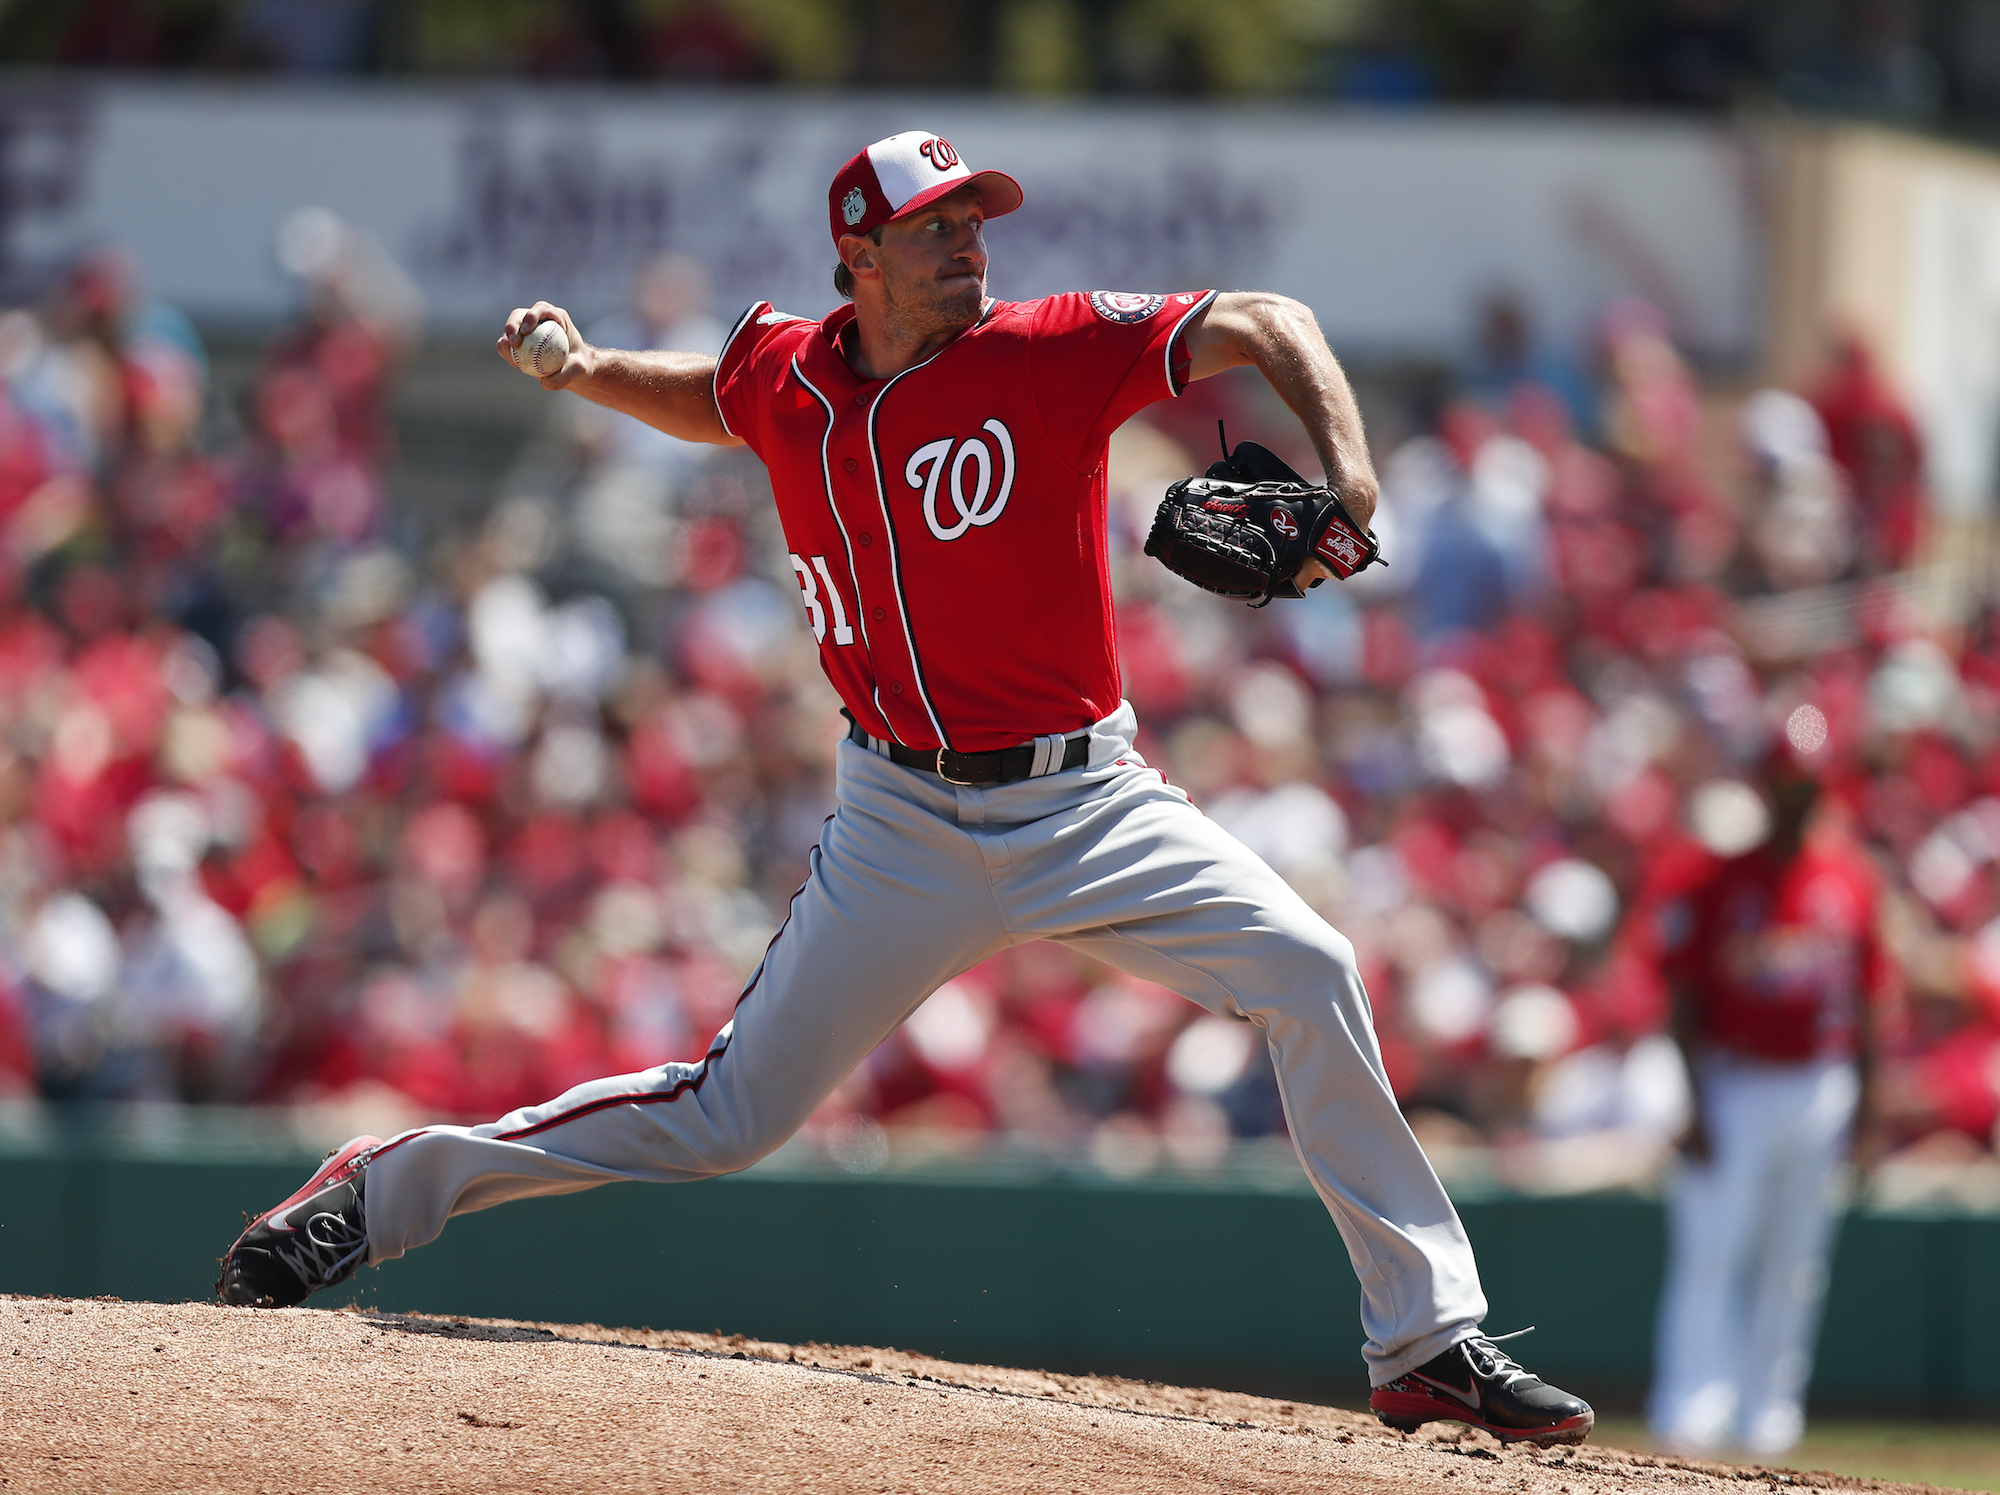 Max Scherzer leads the Nats' rotation again, which ain't a bad thing. (AP)